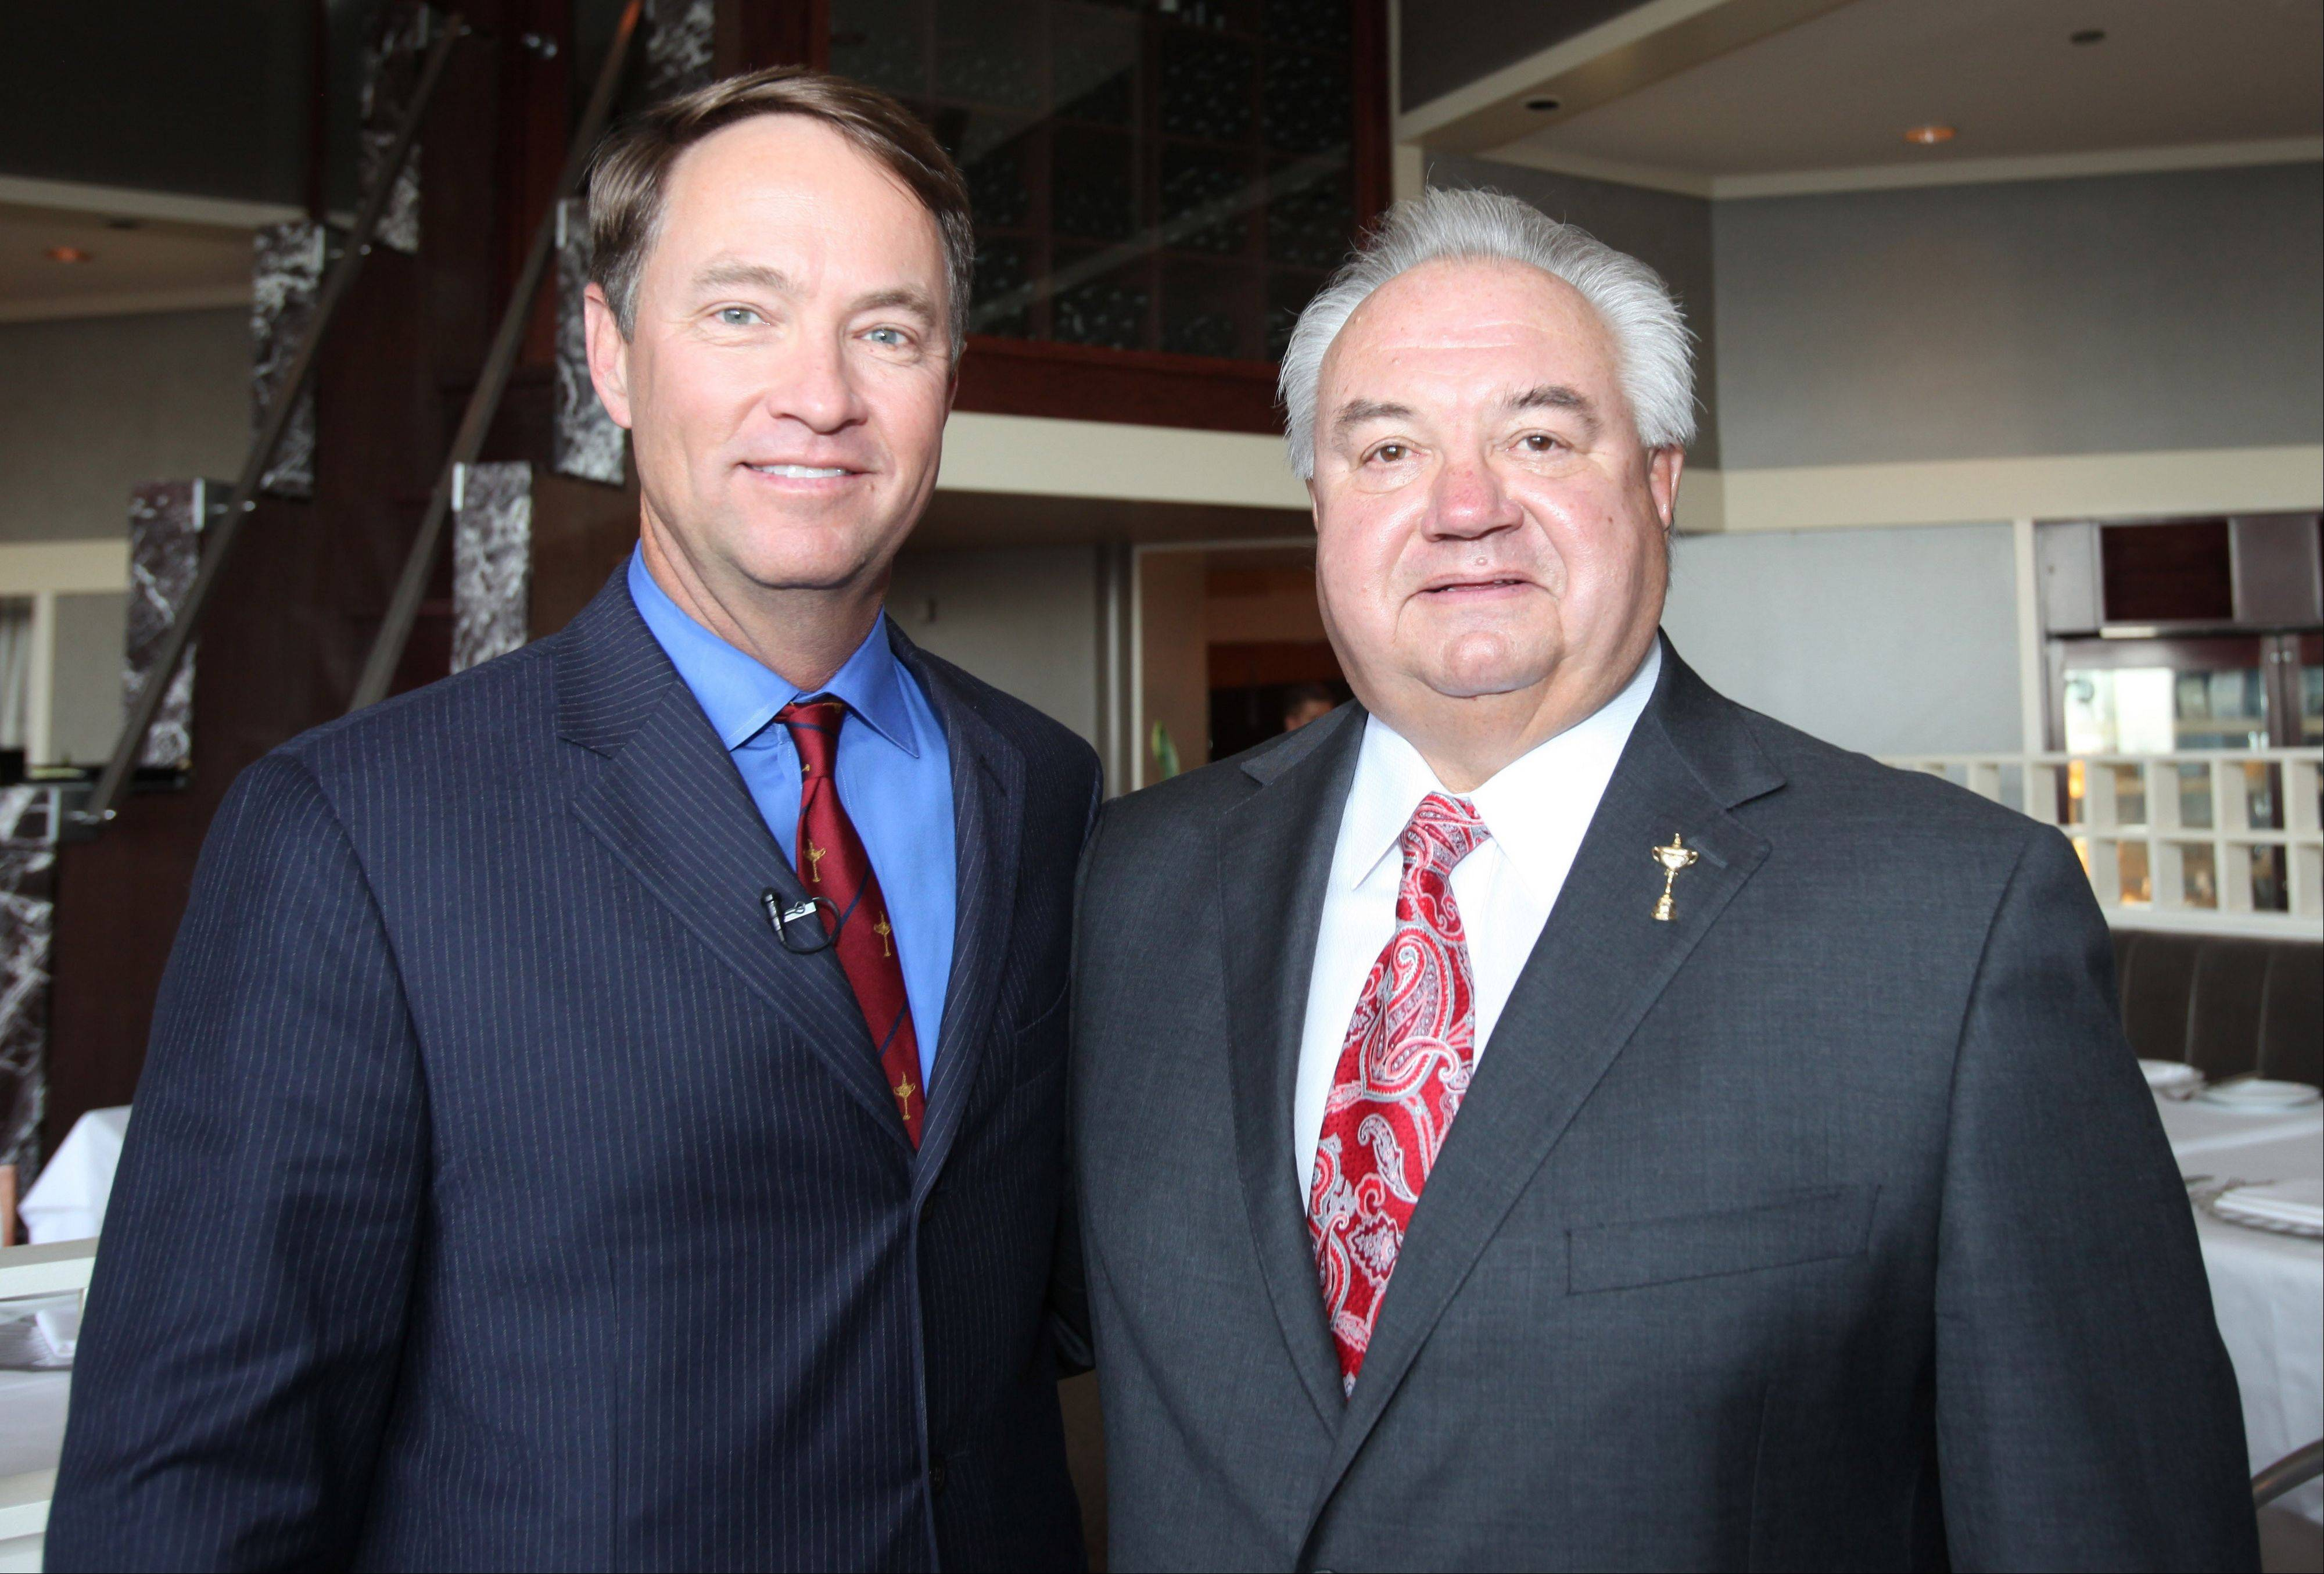 USA Ryder Cup captain Davis Love III with Ryder Cup chairman Don Larson of Medinah Country Club.